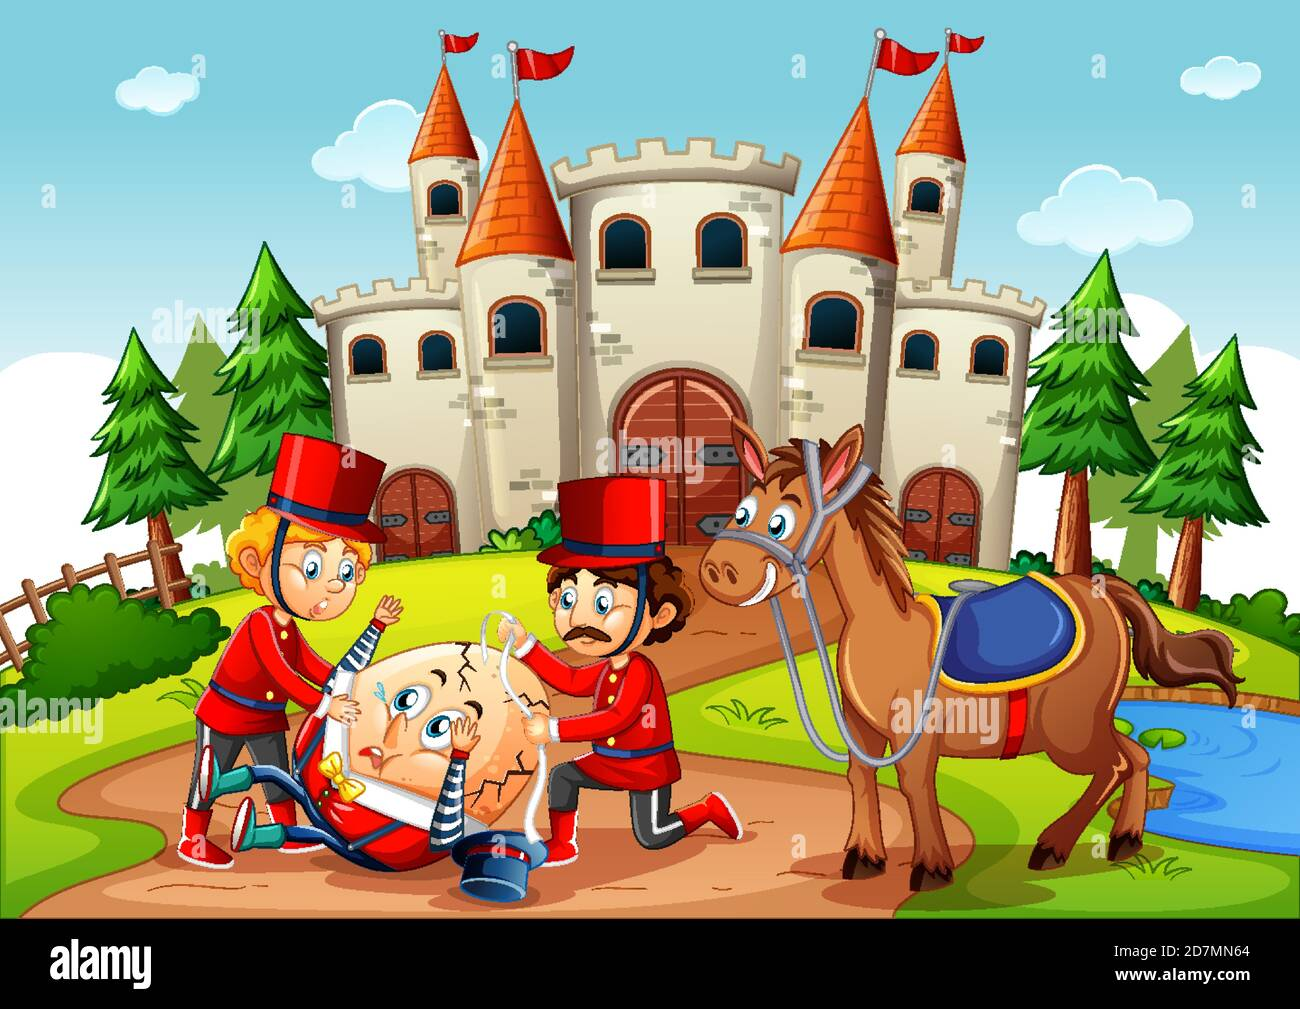 Fairytale scene with humpty dumpty egg and soldier royal guard scene illustration Stock Vector